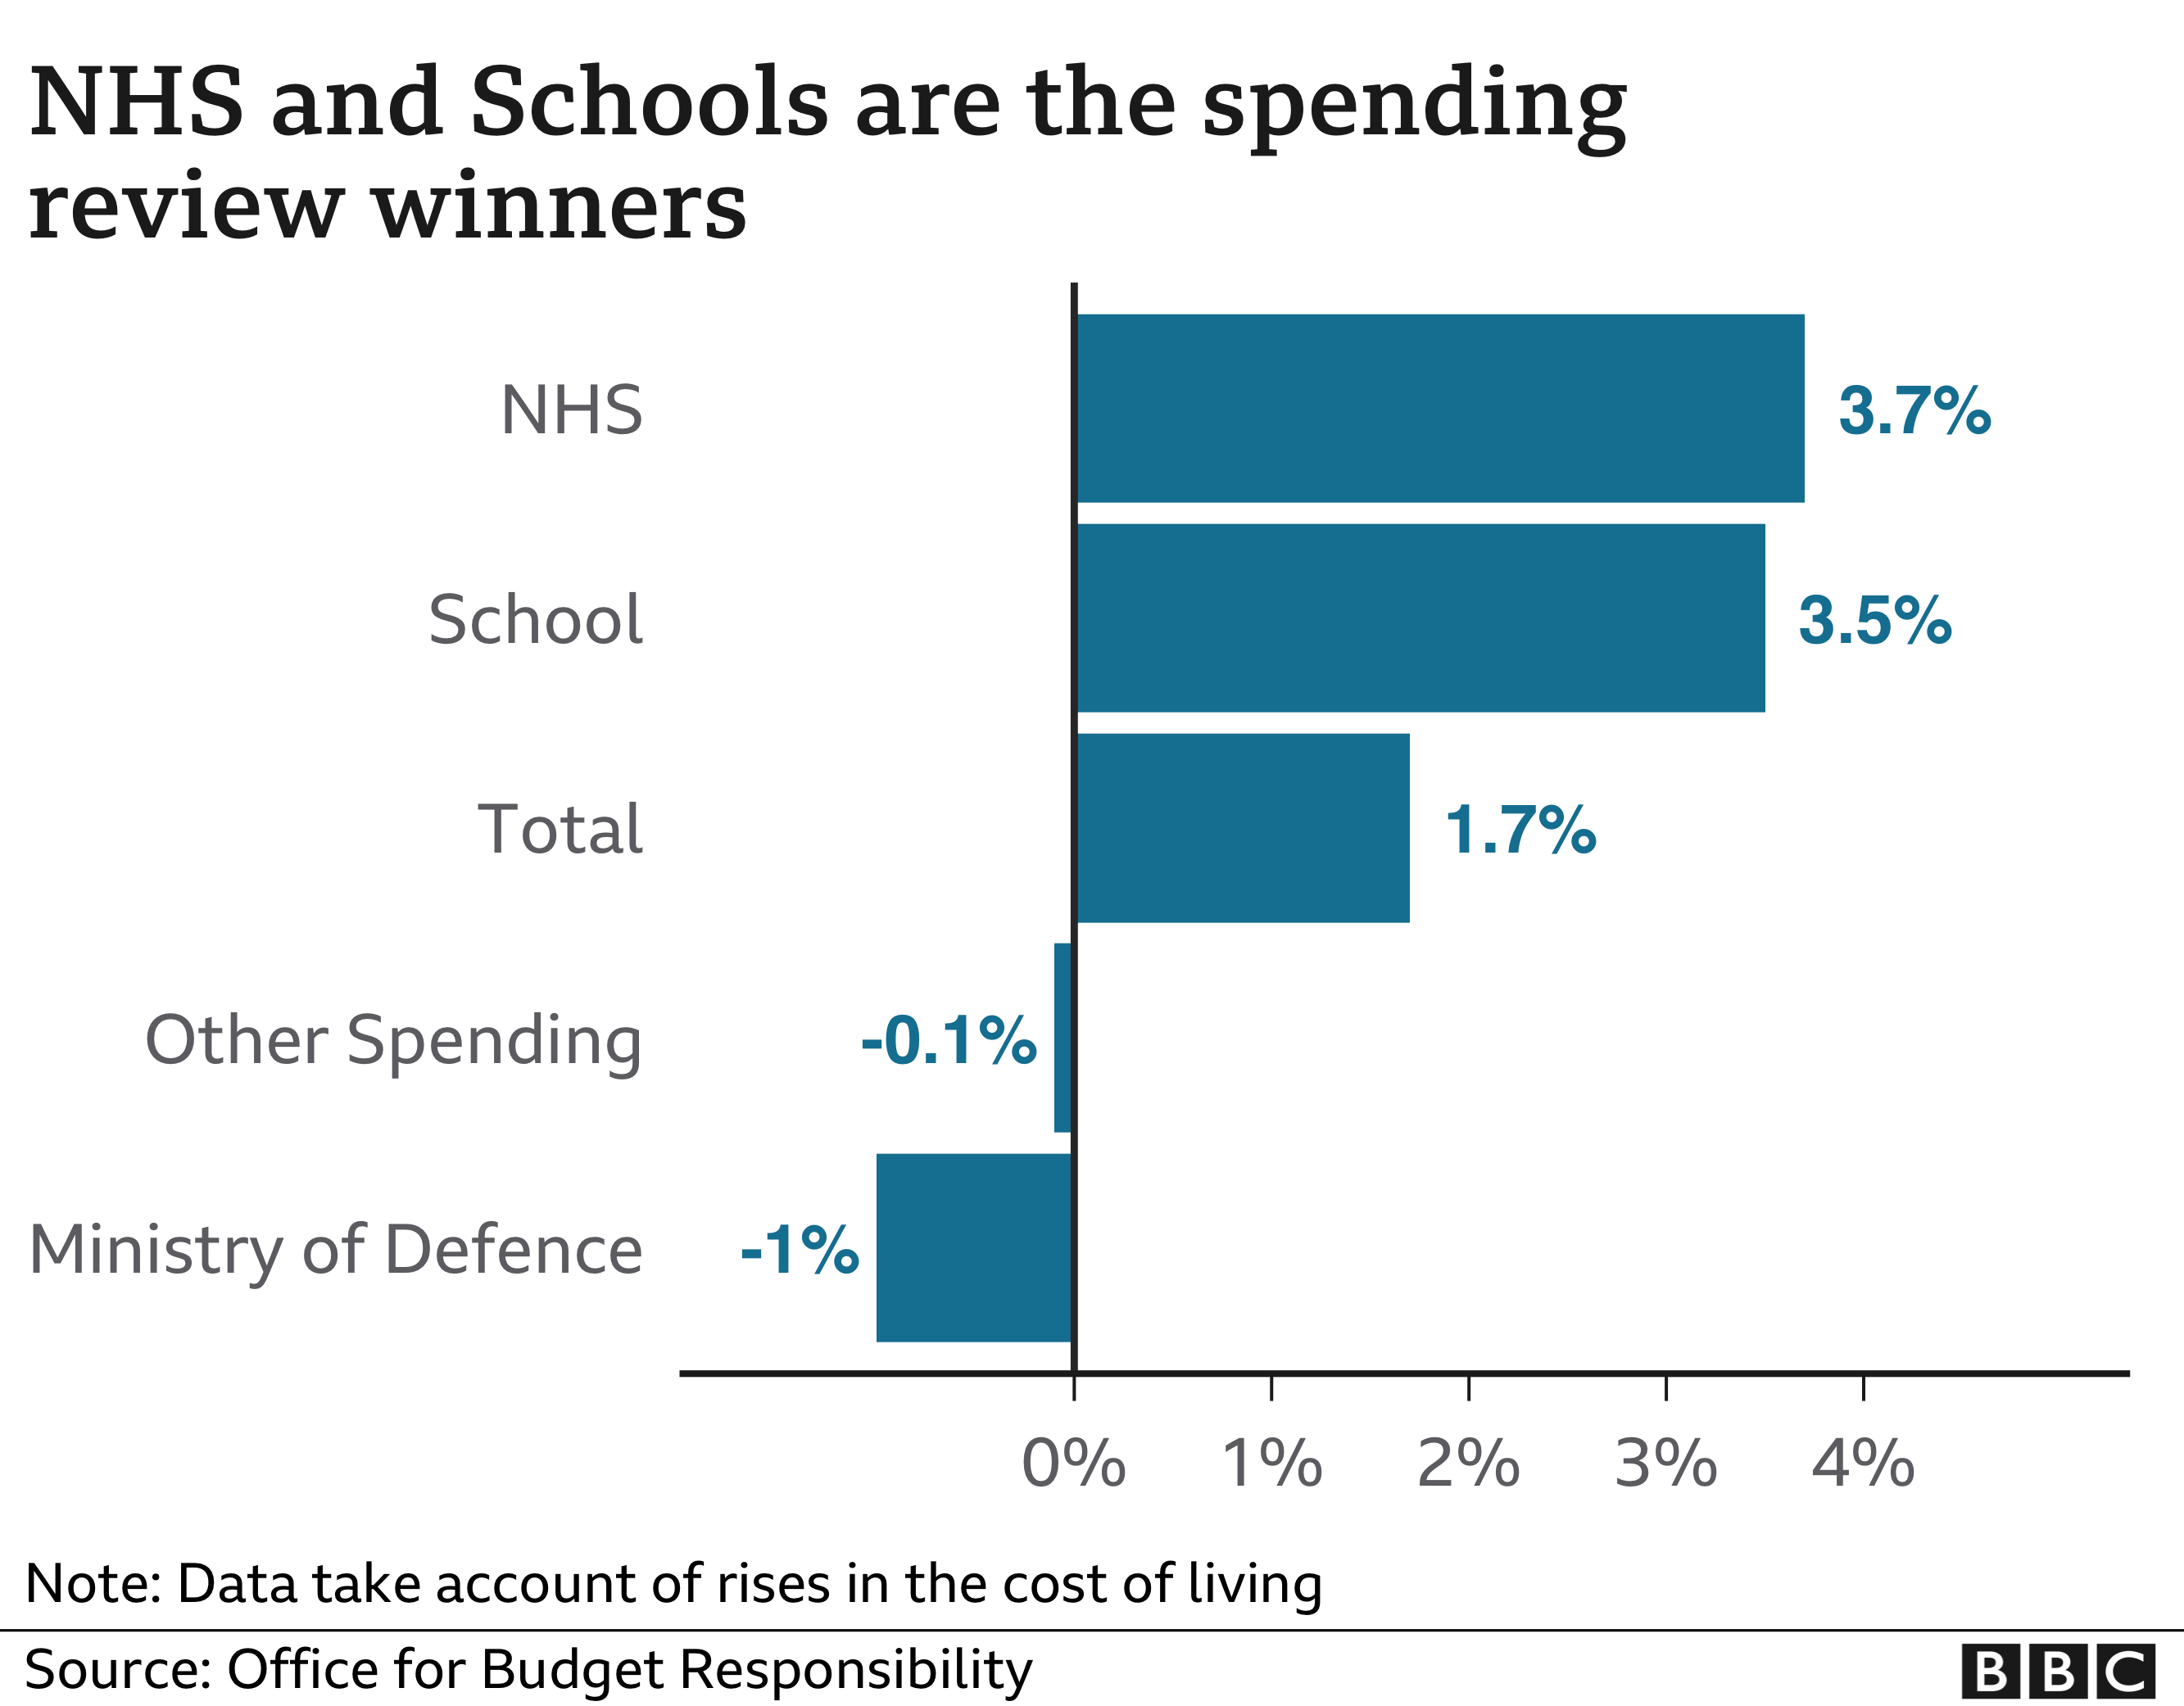 NHS and Schools are the spending review winners